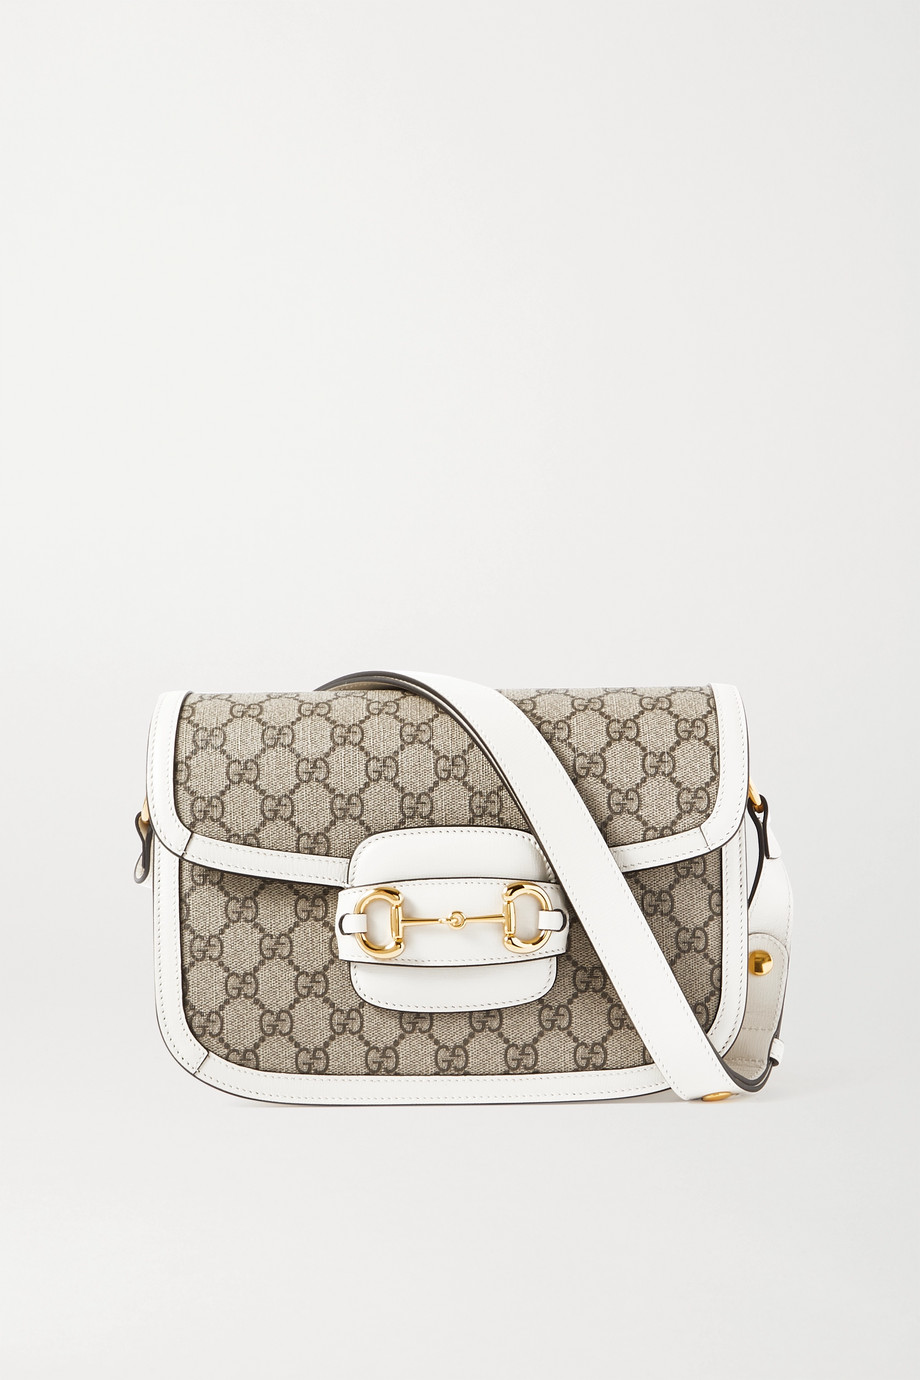 GUCCI 1955 Horsebit small leather-trimmed printed coated-canvas shoulder bag